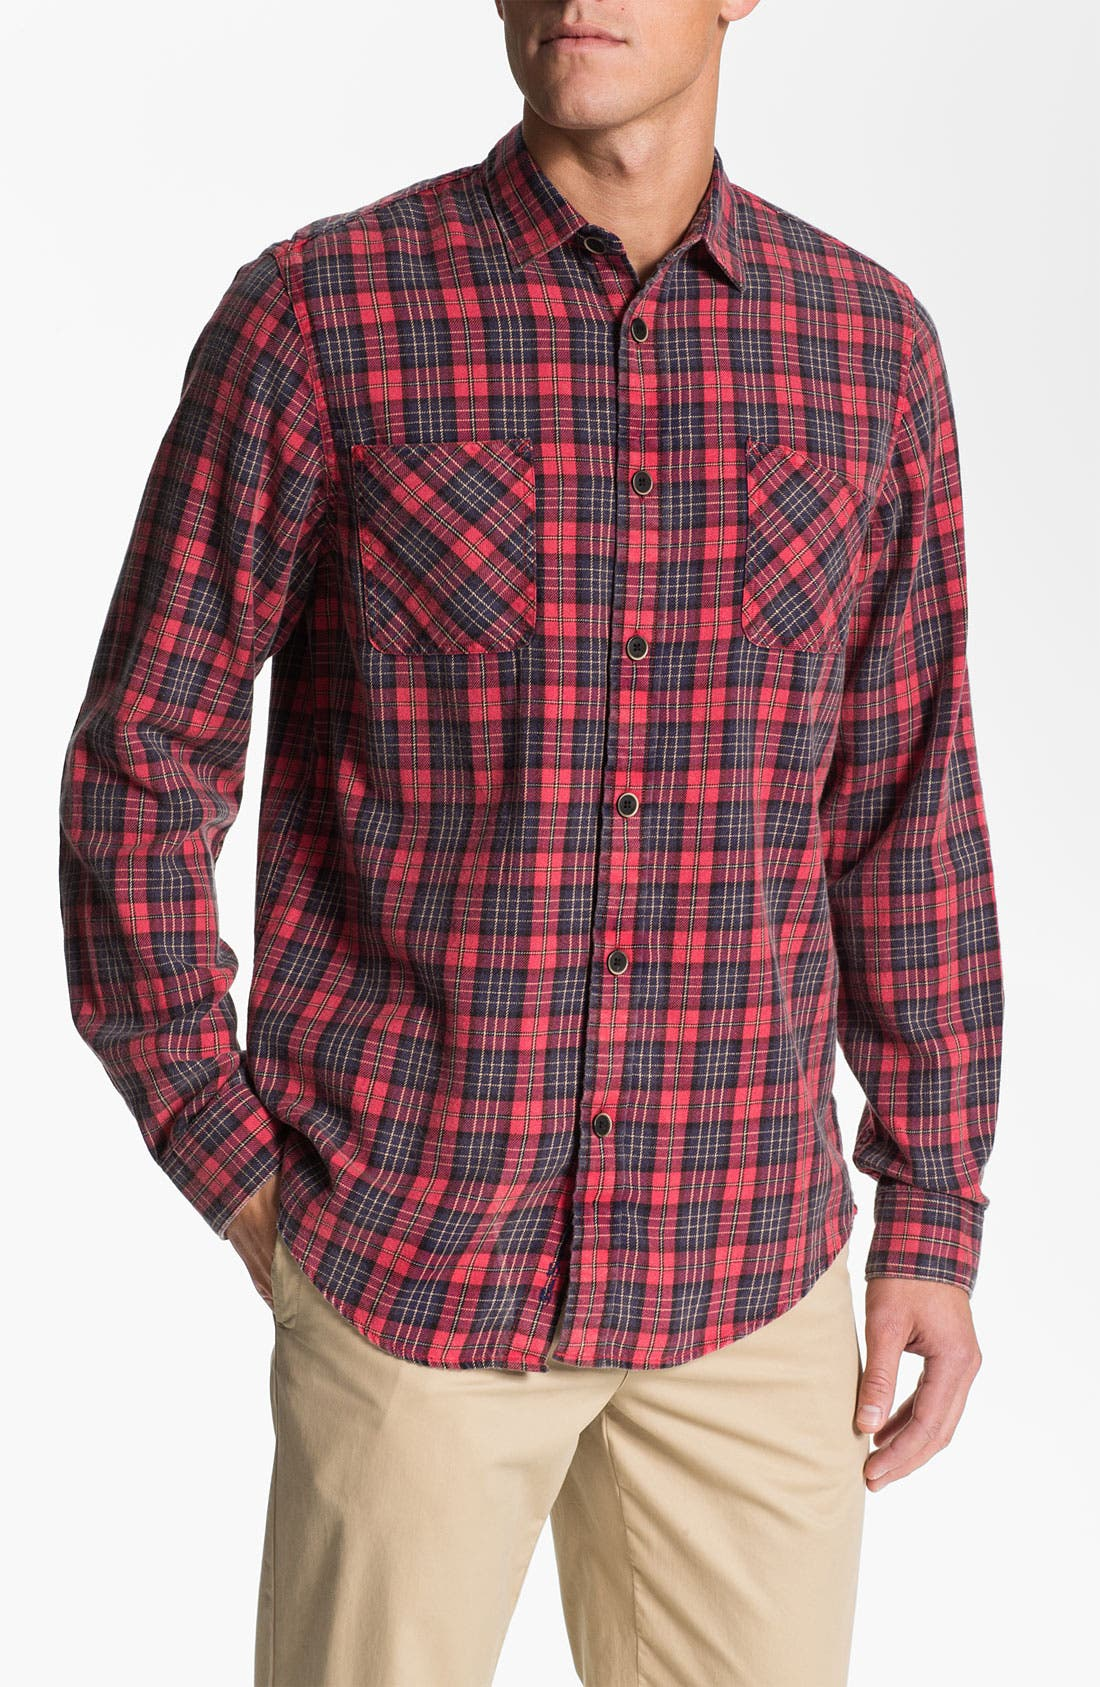 Main Image - Ben Sherman 'Shoreditch' Plaid Twill Shirt